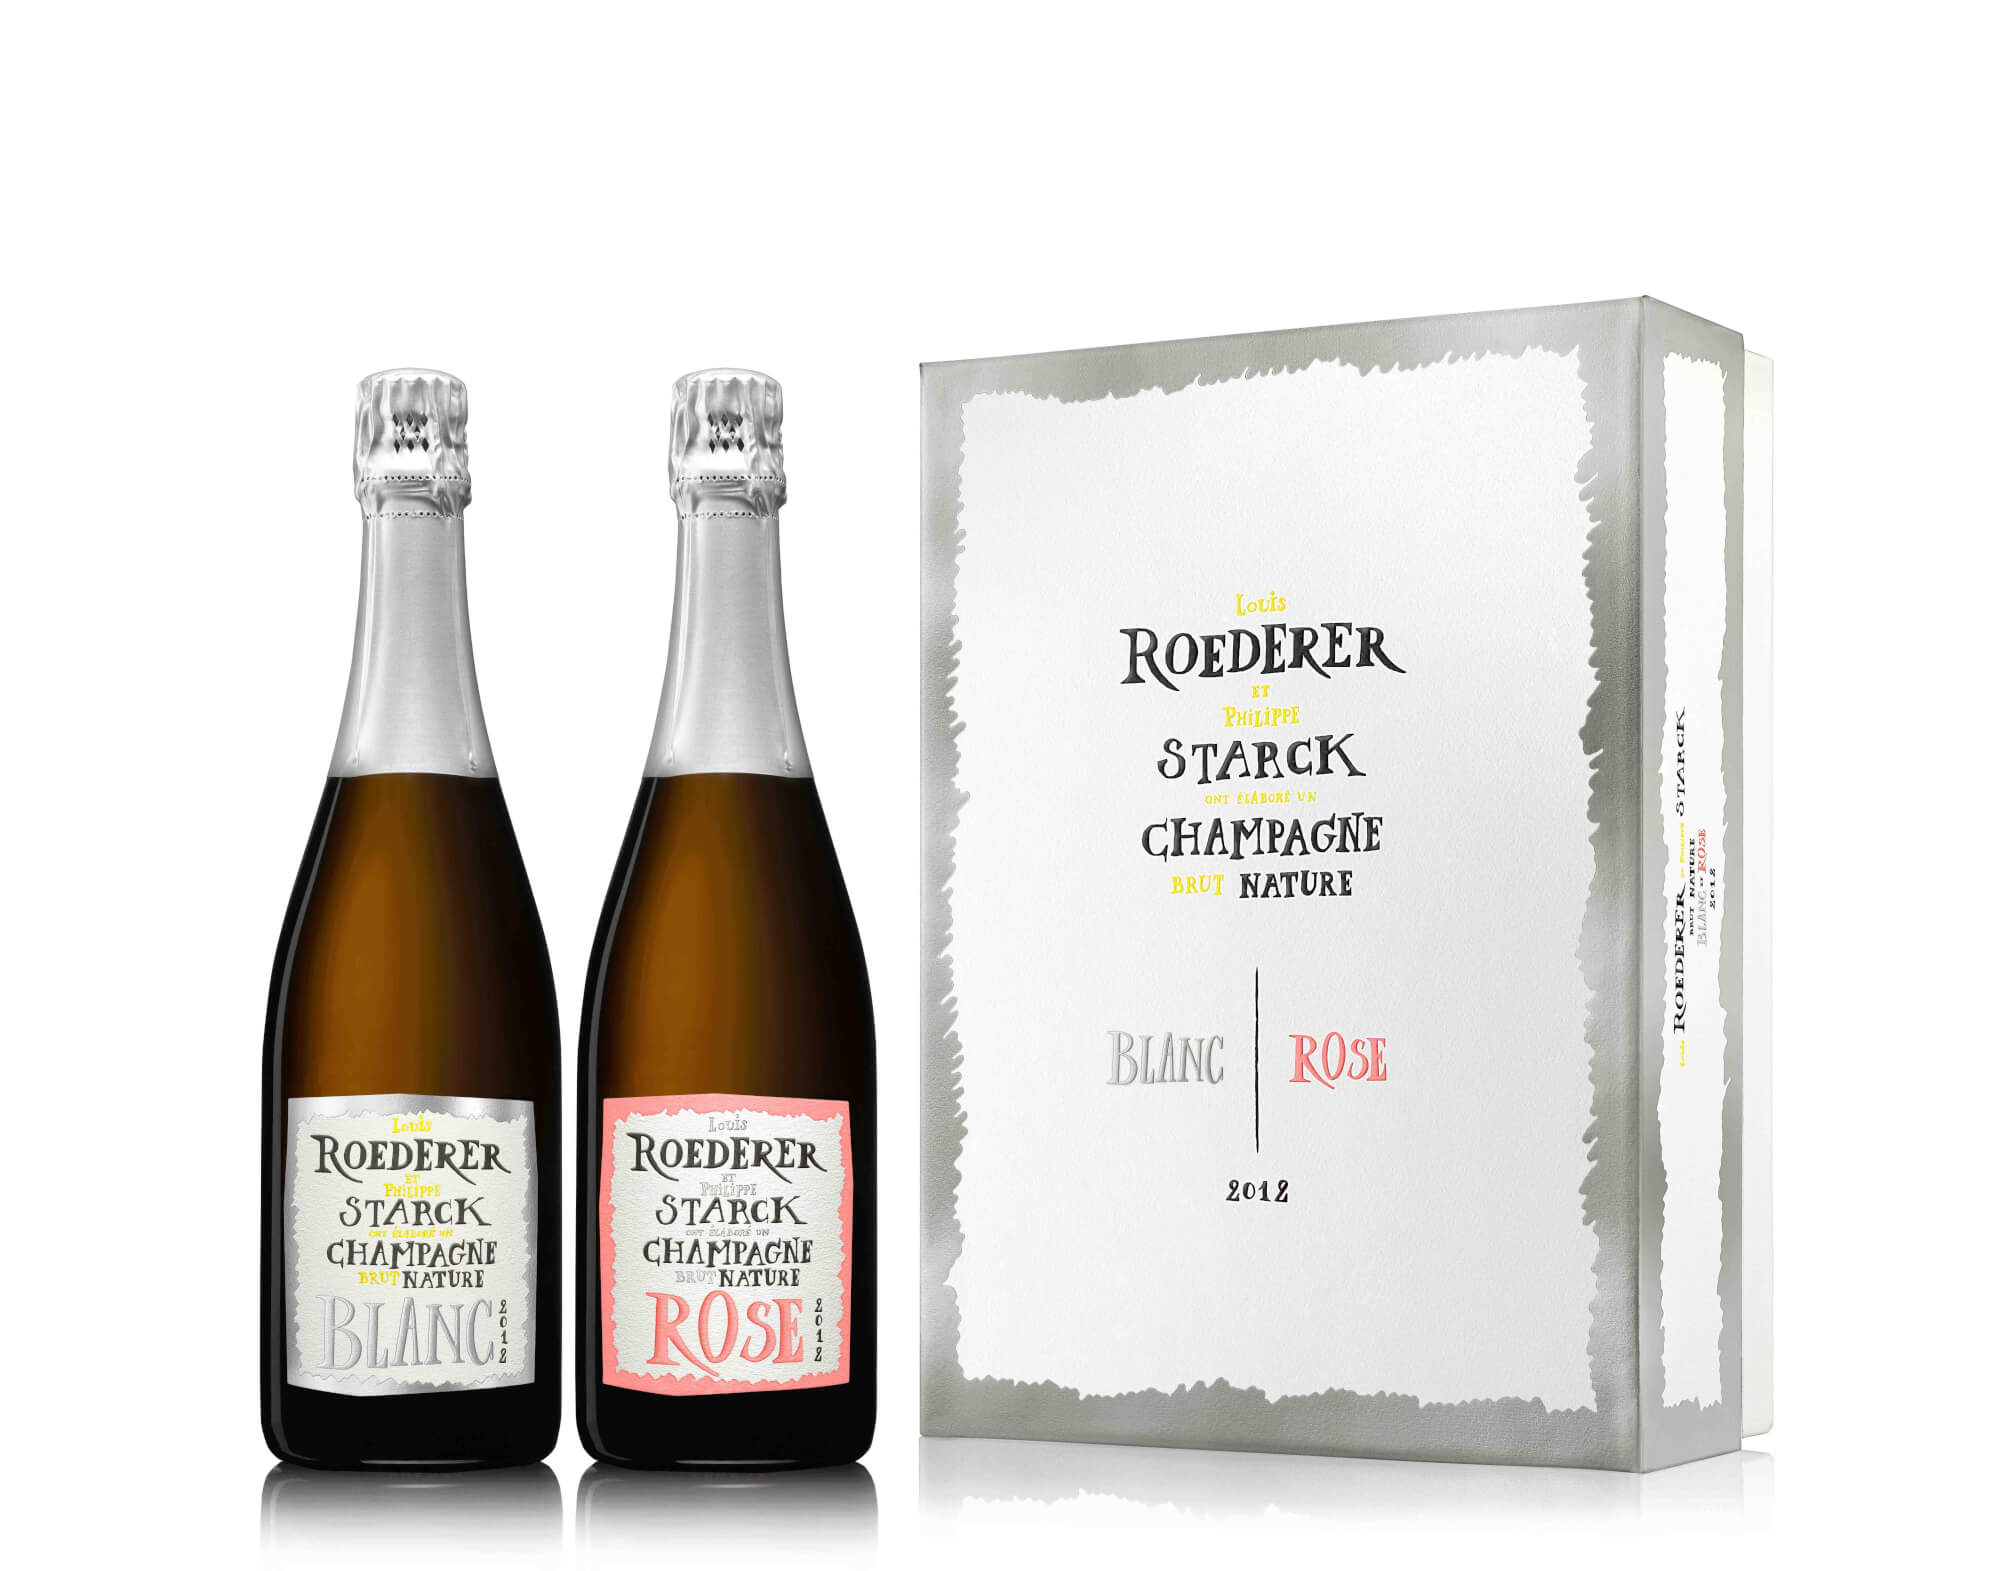 WORDS TO CHAMPAGNE – Brut Nature 2012, Roederer x Starck  -